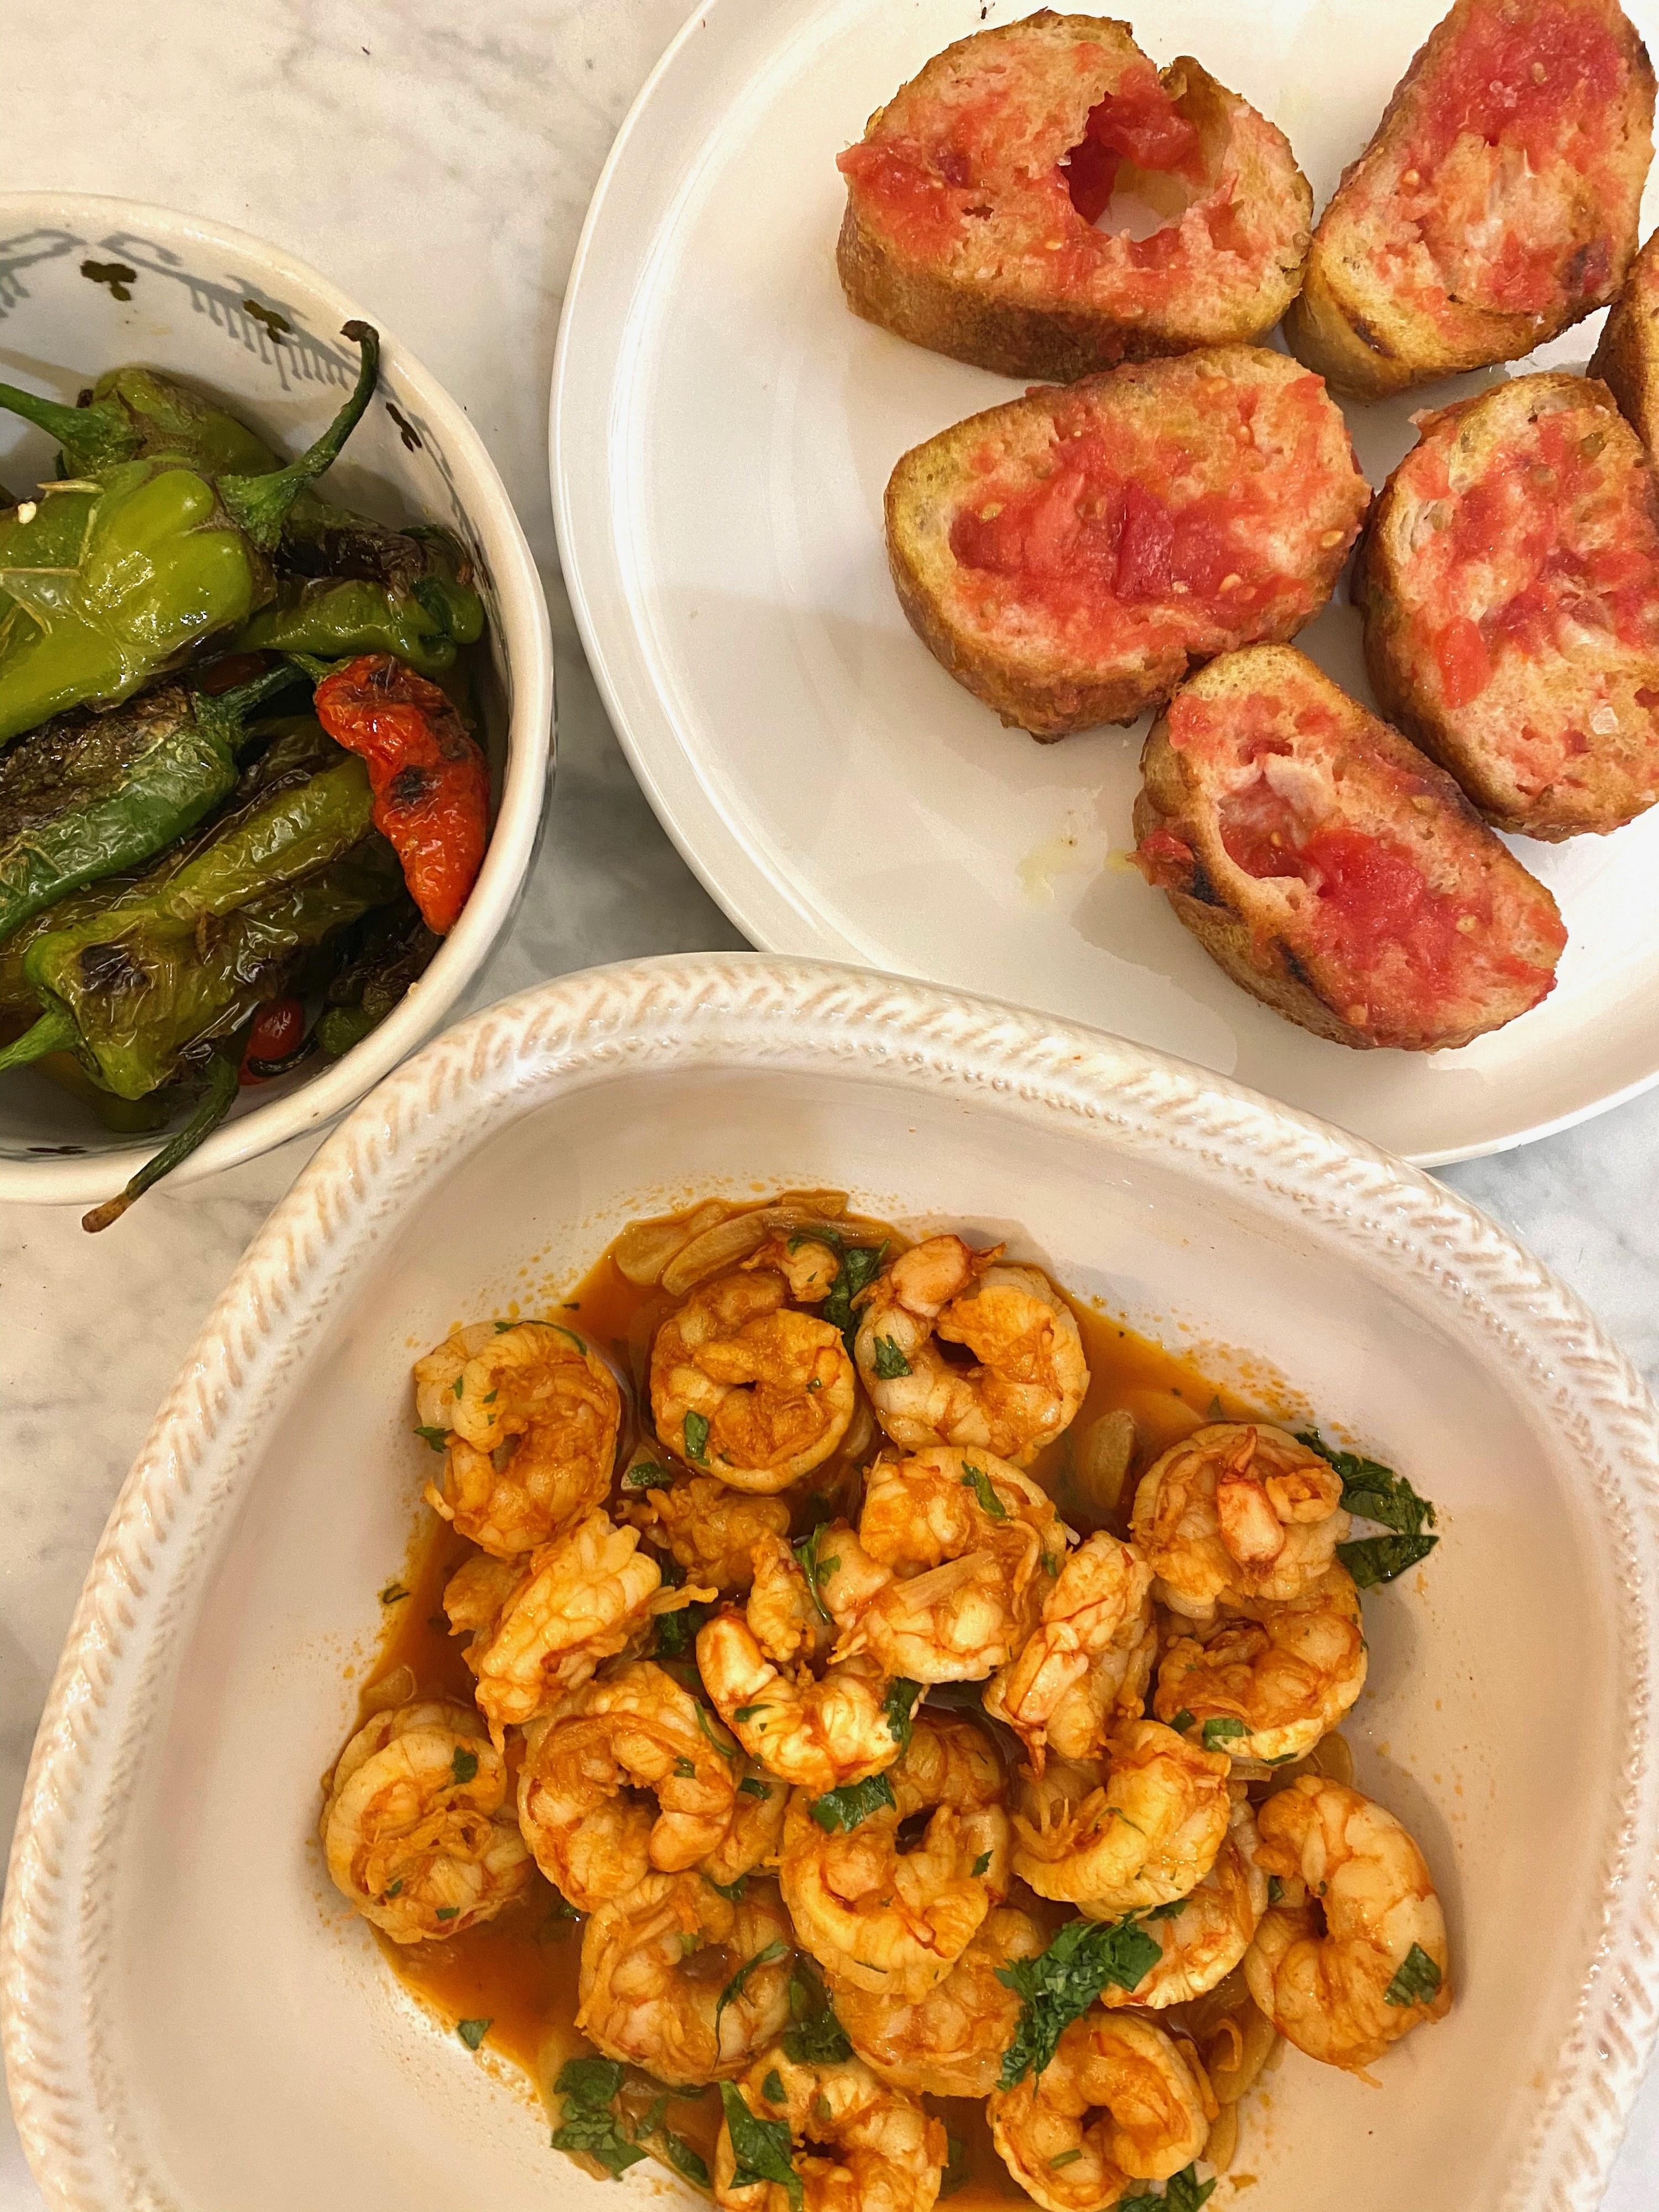 Shrimp in garlic sauce with shishito peppers and pan tomate.